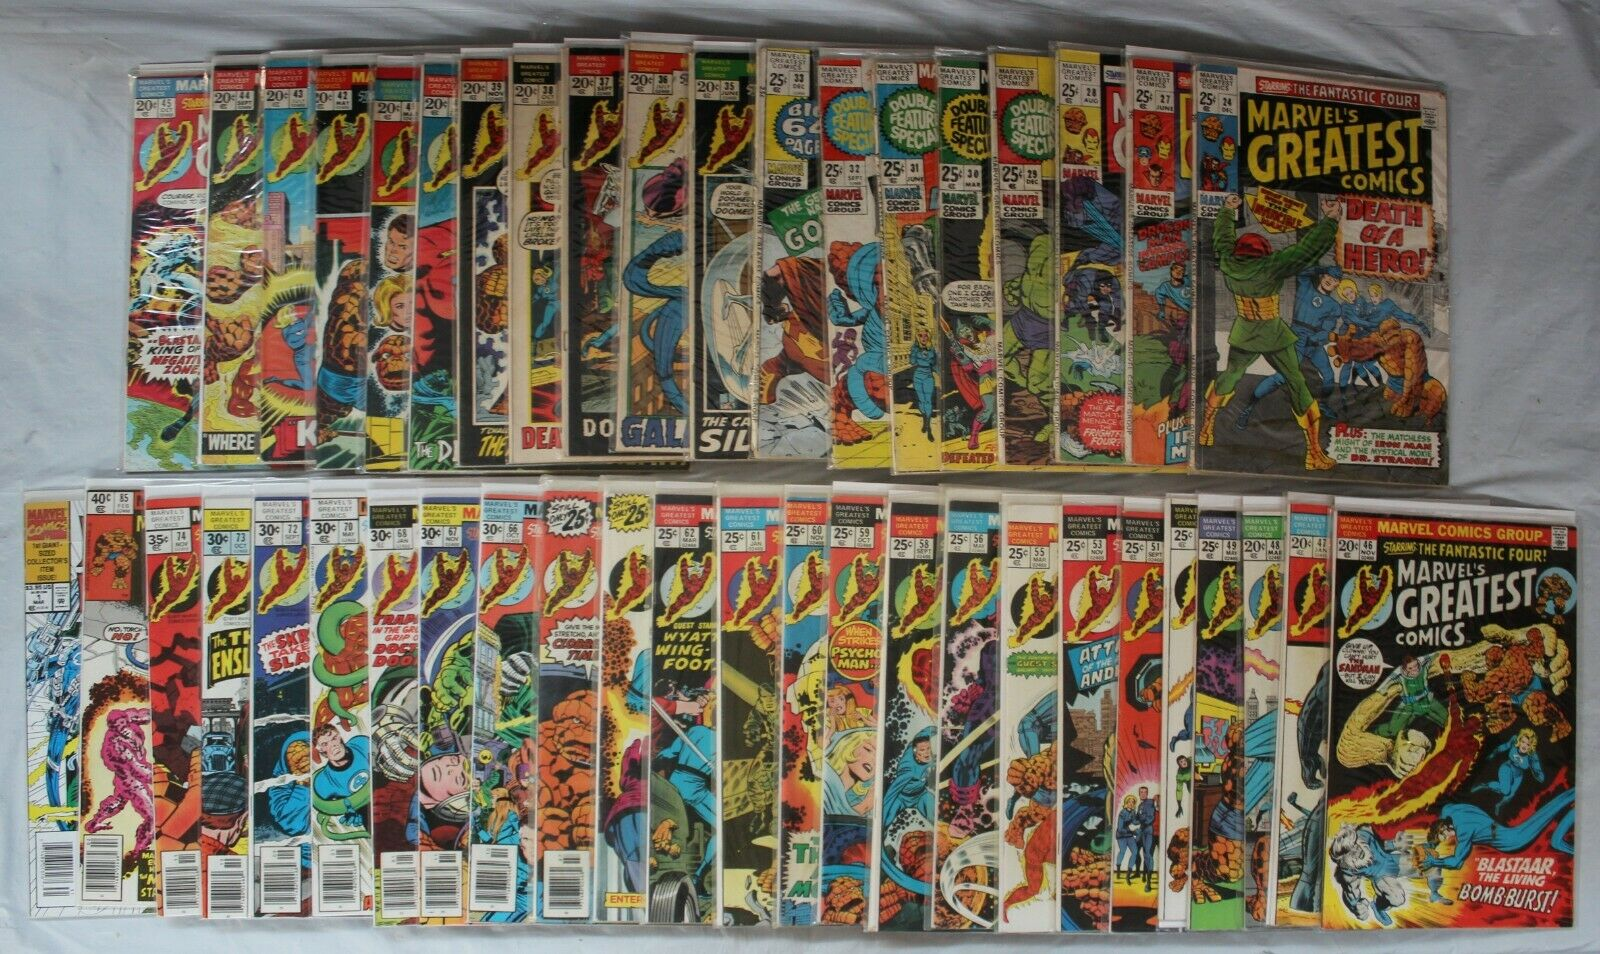 Lot of 44 Marvel's Greatest Comics Starring The Fantastic Four + Unlimited #1